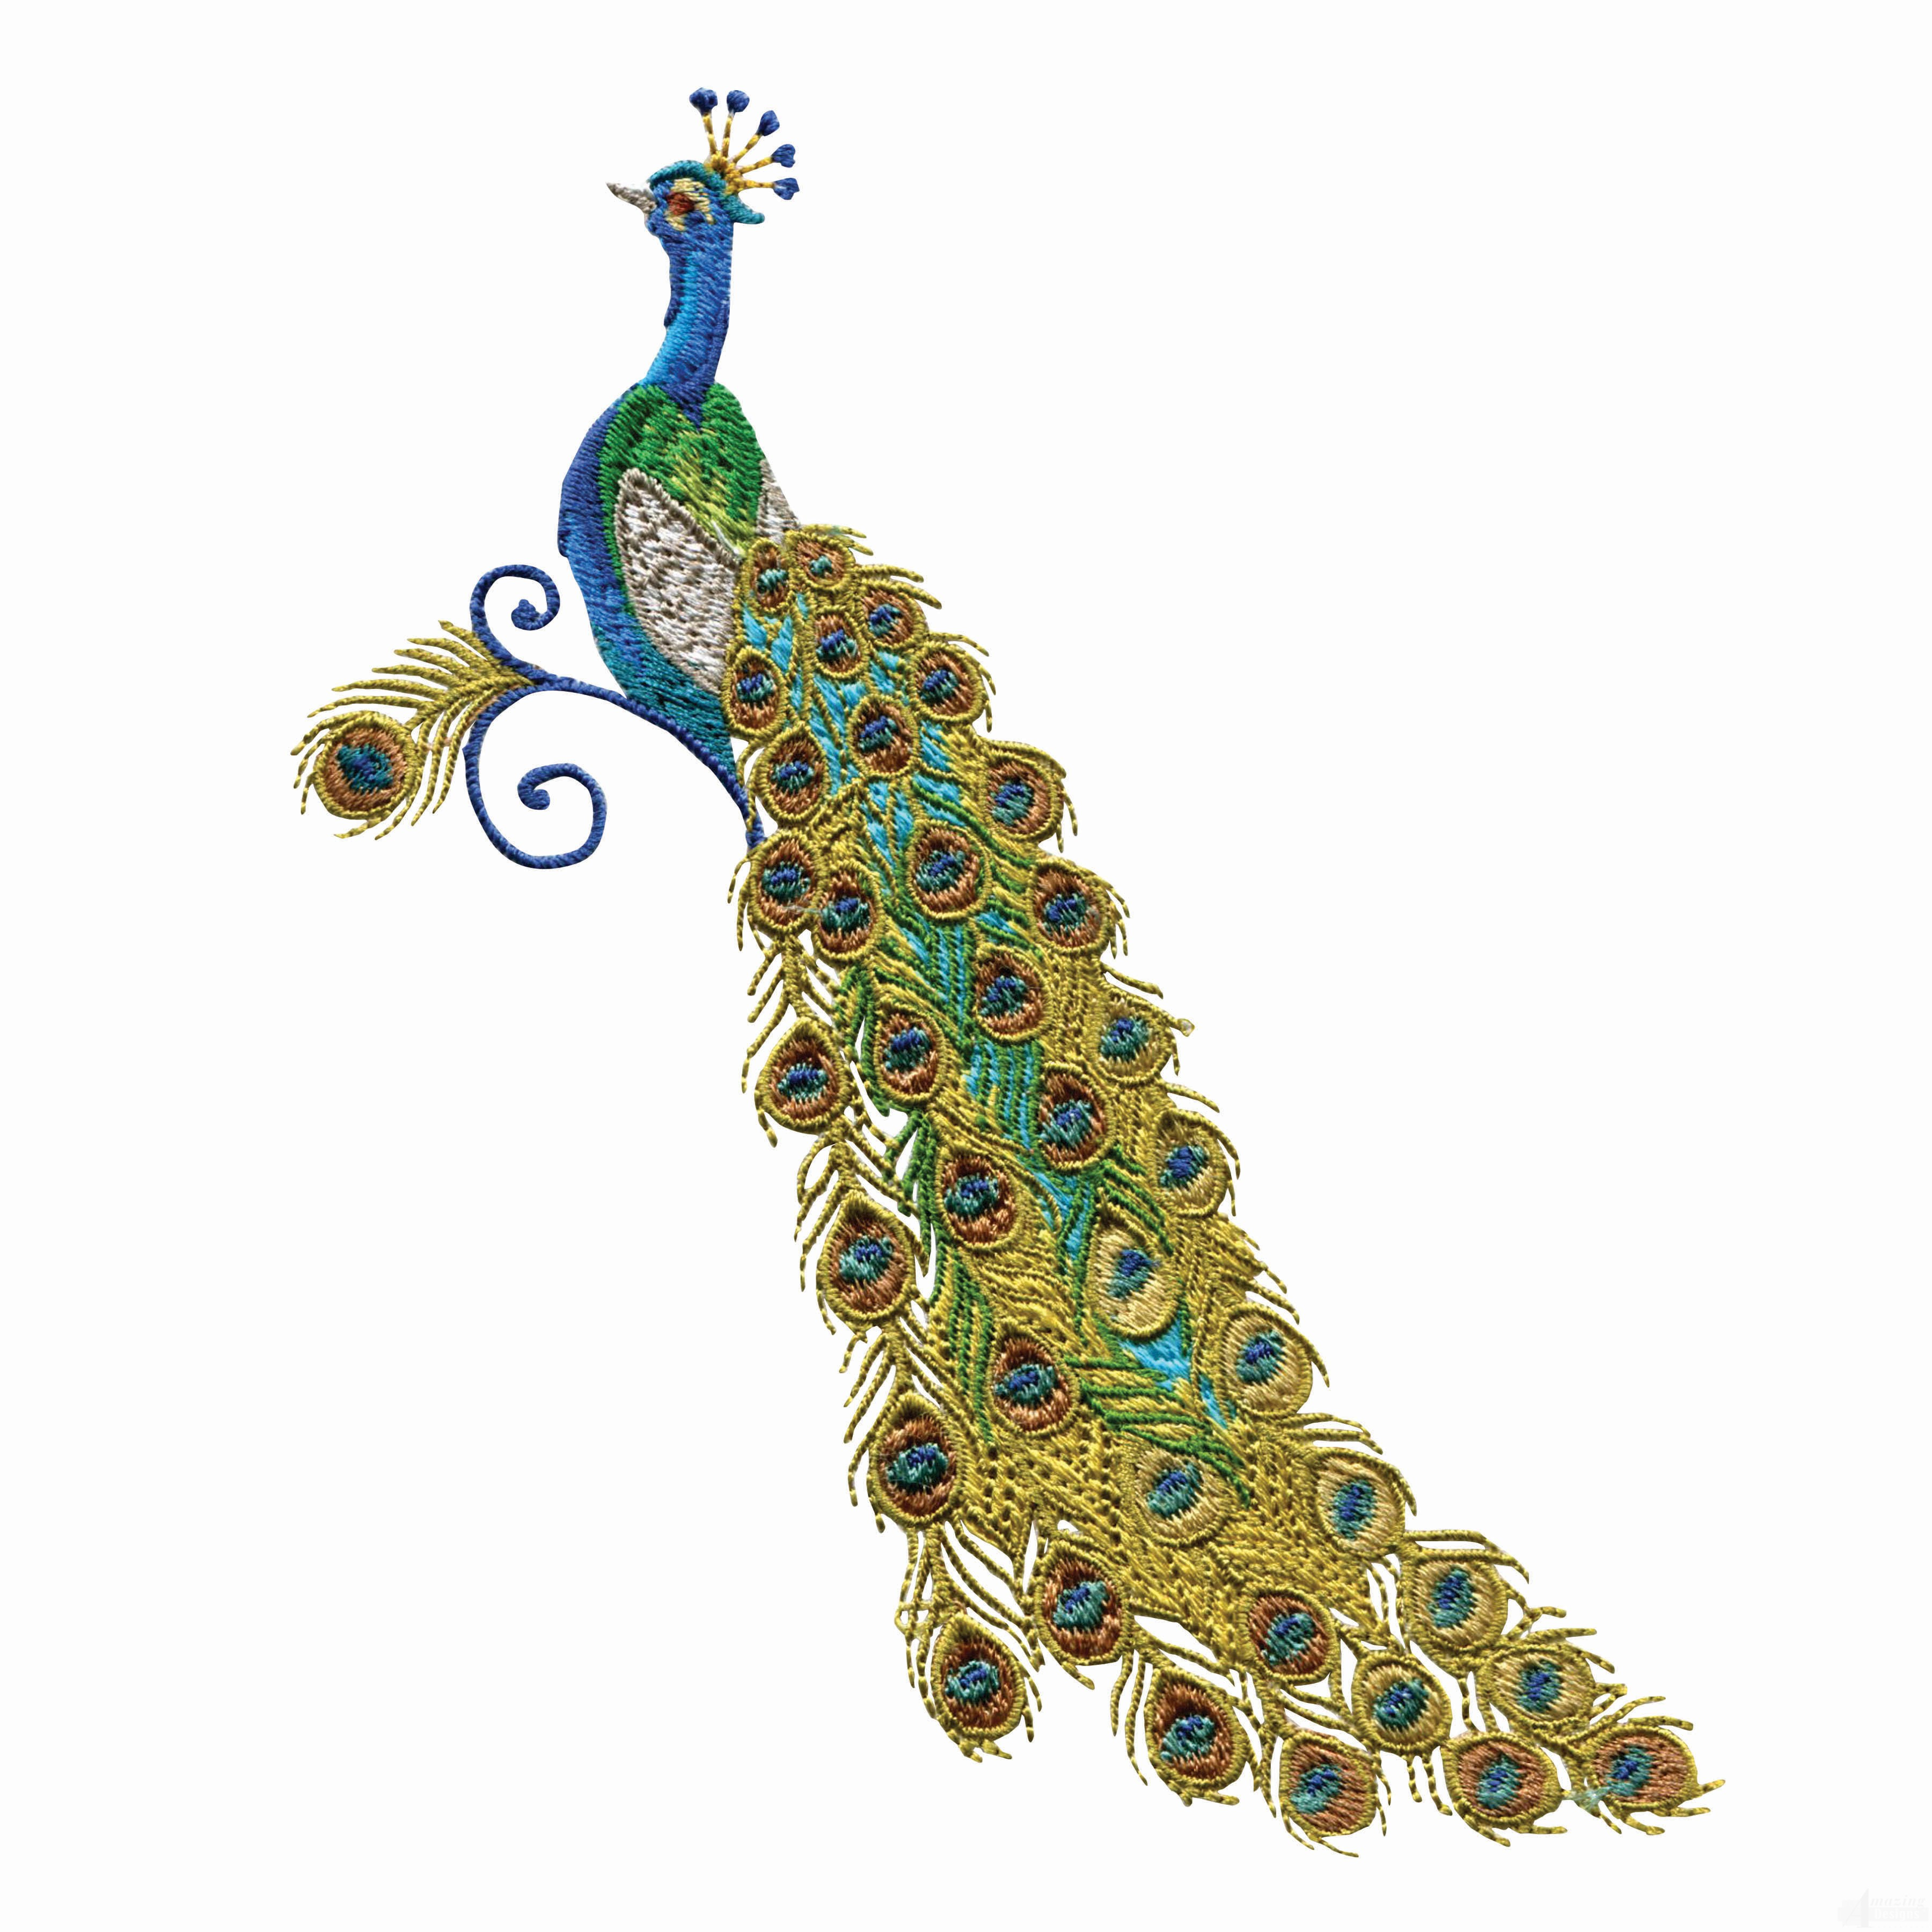 Peacock Embroidery Patterns 15 Best Photos Of Peacock Embroidery Patterns Peacock Embroidery